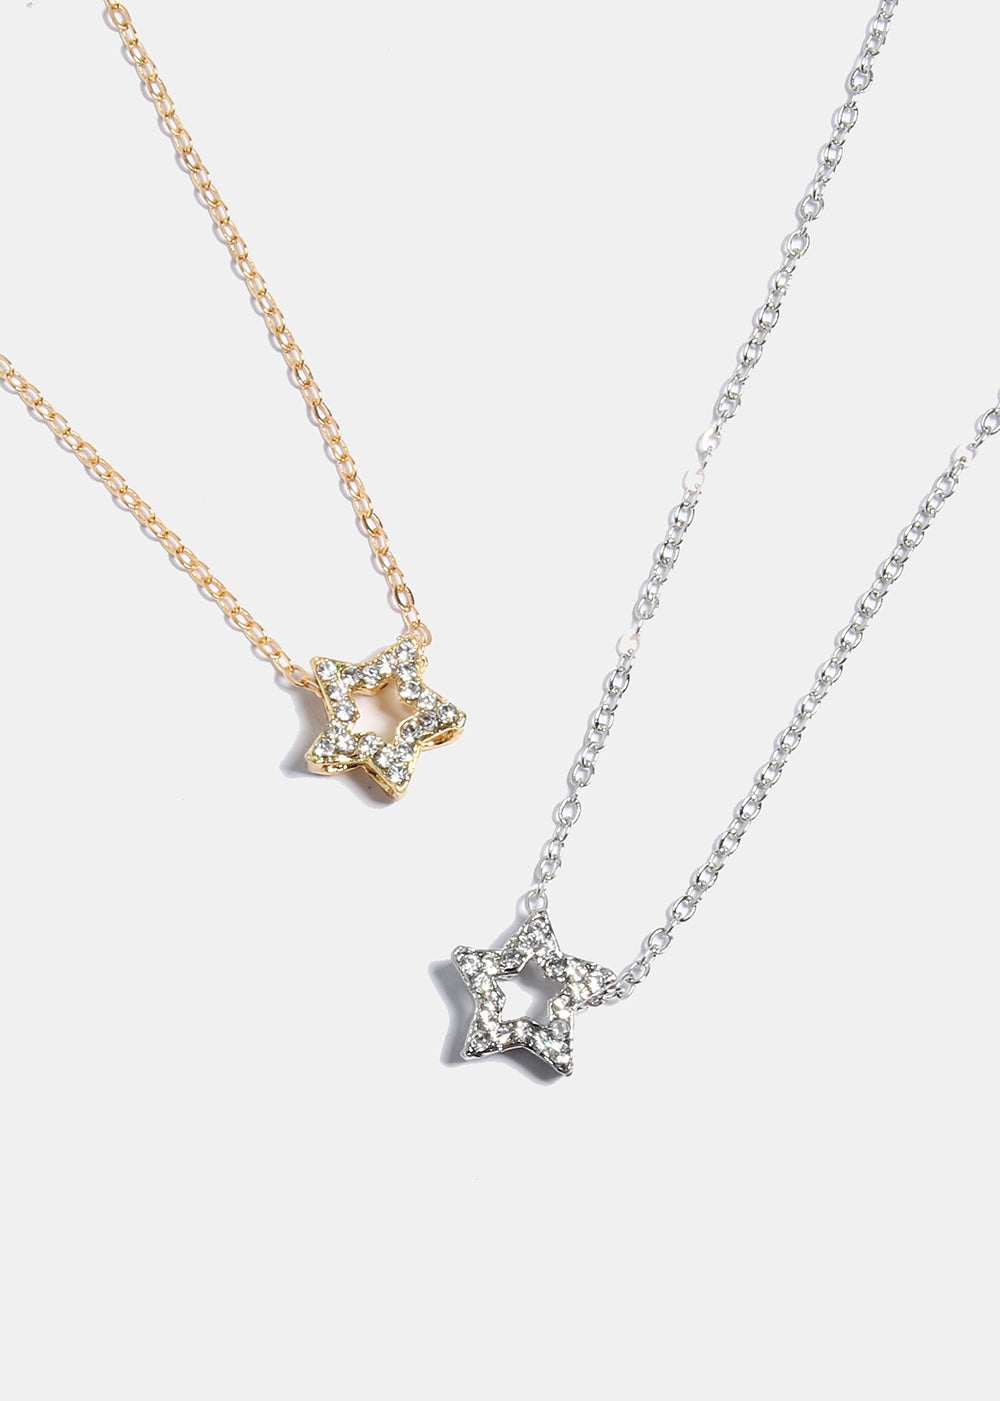 image muru multi hope jewellery necklaces star necklace sterling silver